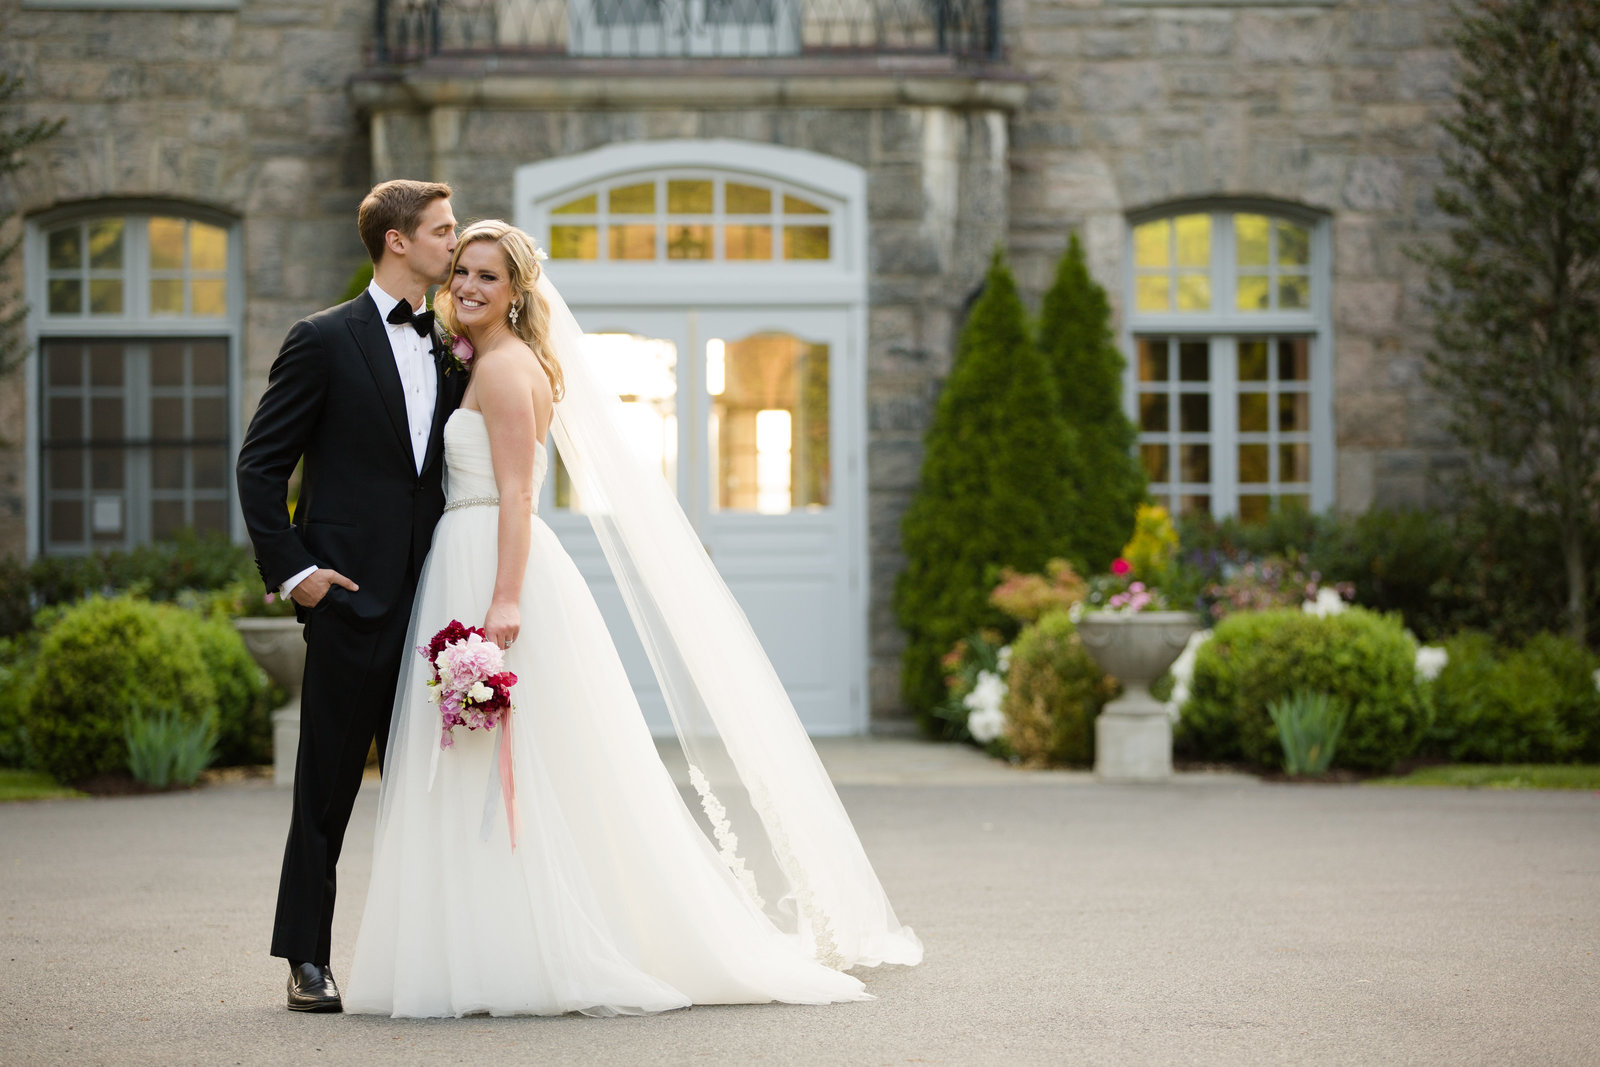 Romantic Wedding at the Wainwright House in Rye New York by Jessica Haley